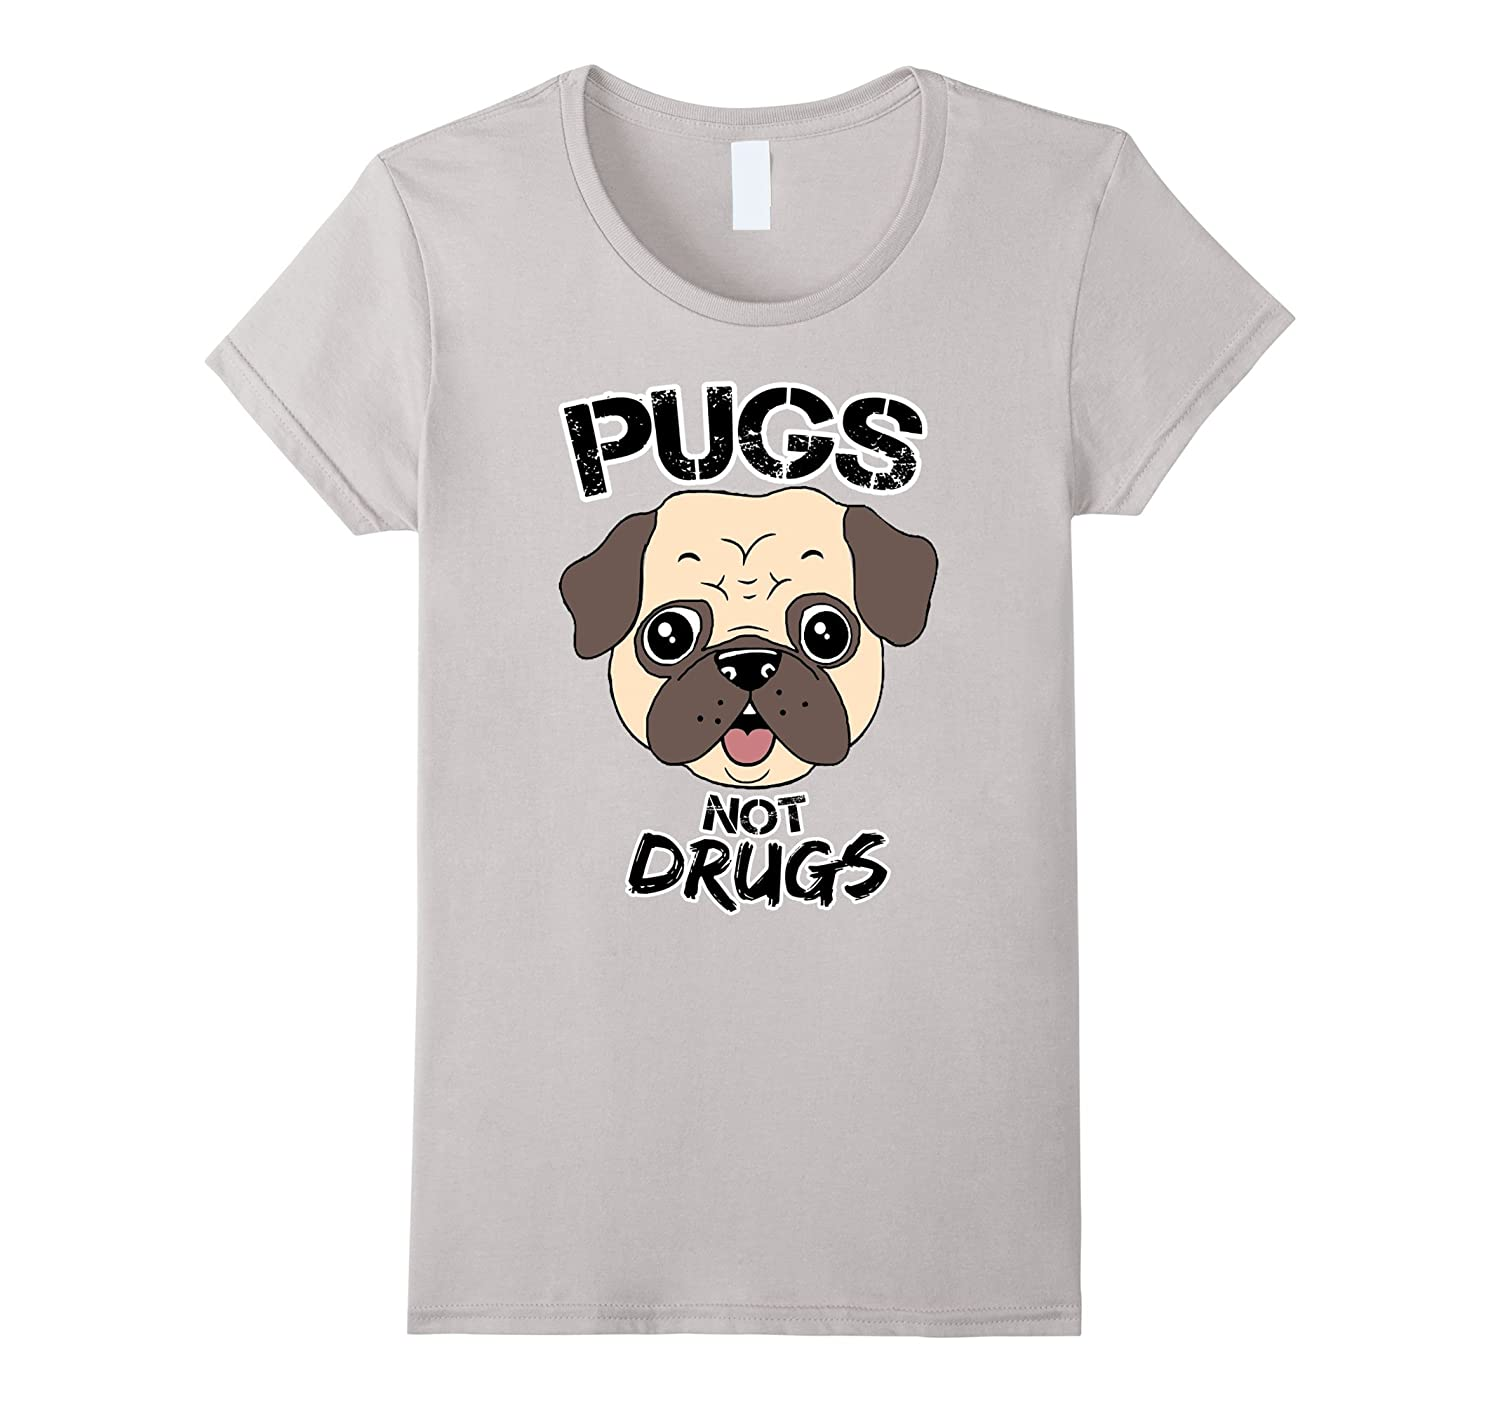 Pugs Not Drugs Dog LoversTee Shirt